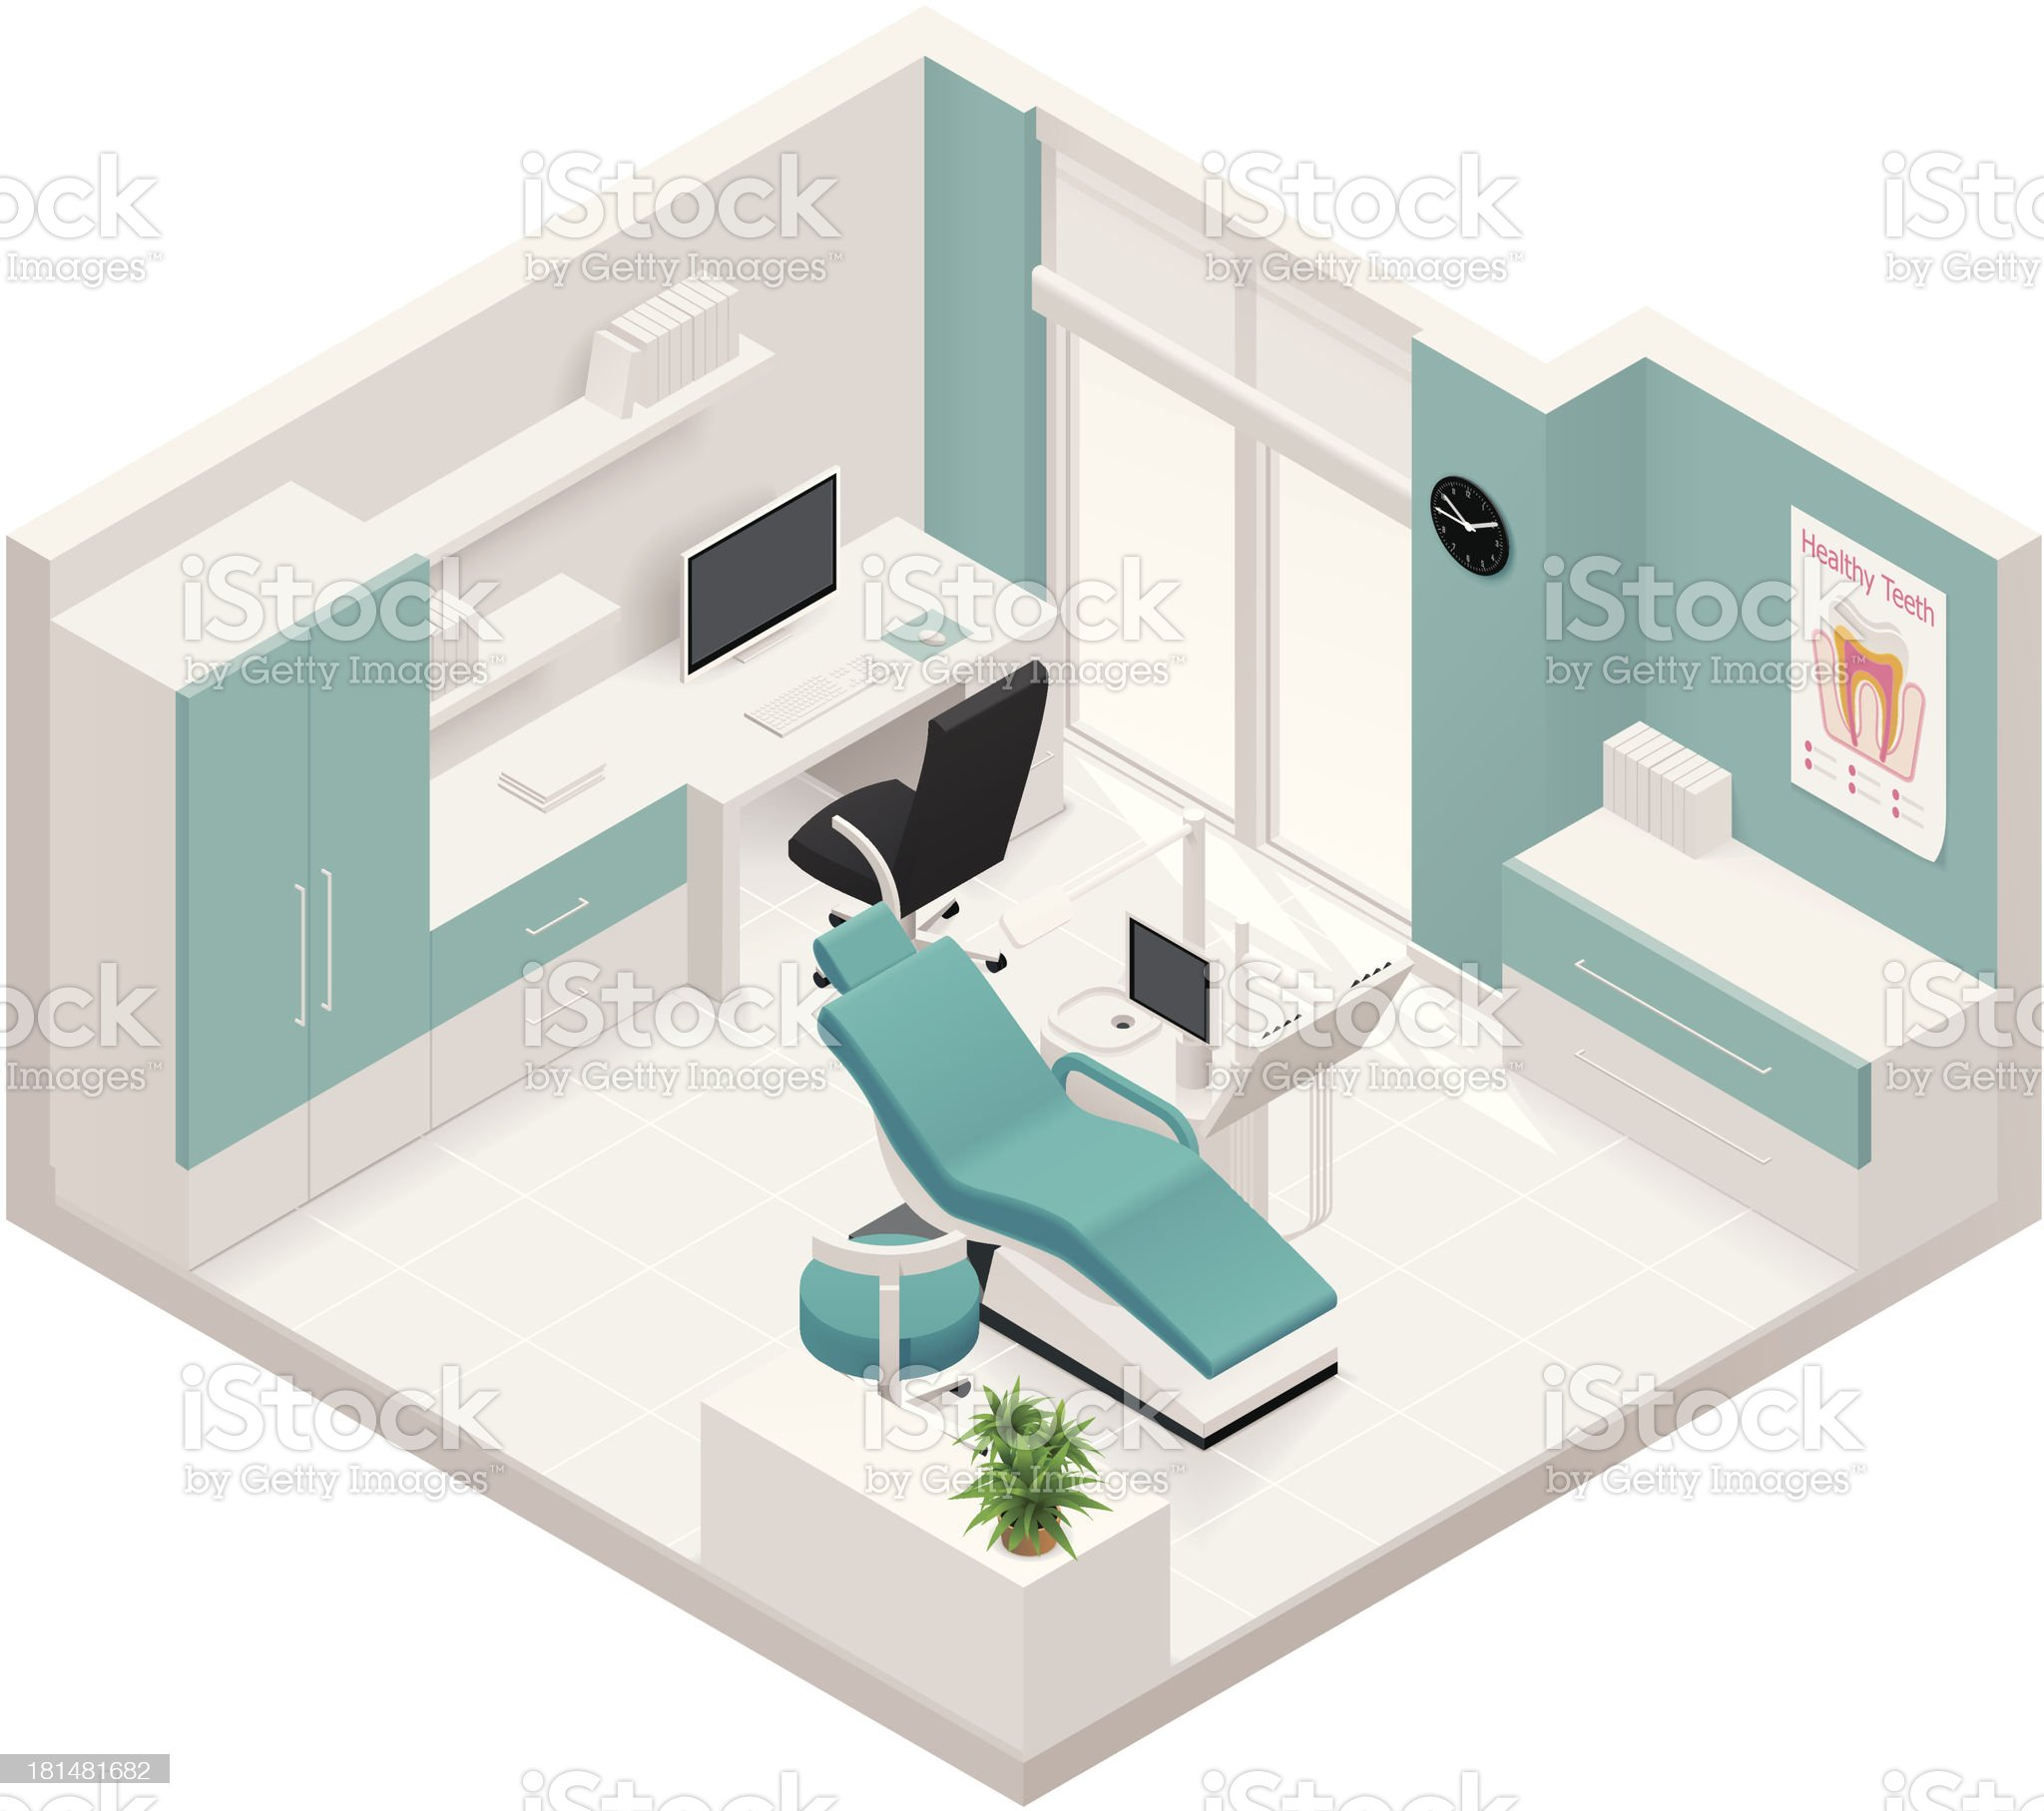 Isometric dental clinic icon royalty-free stock vector art